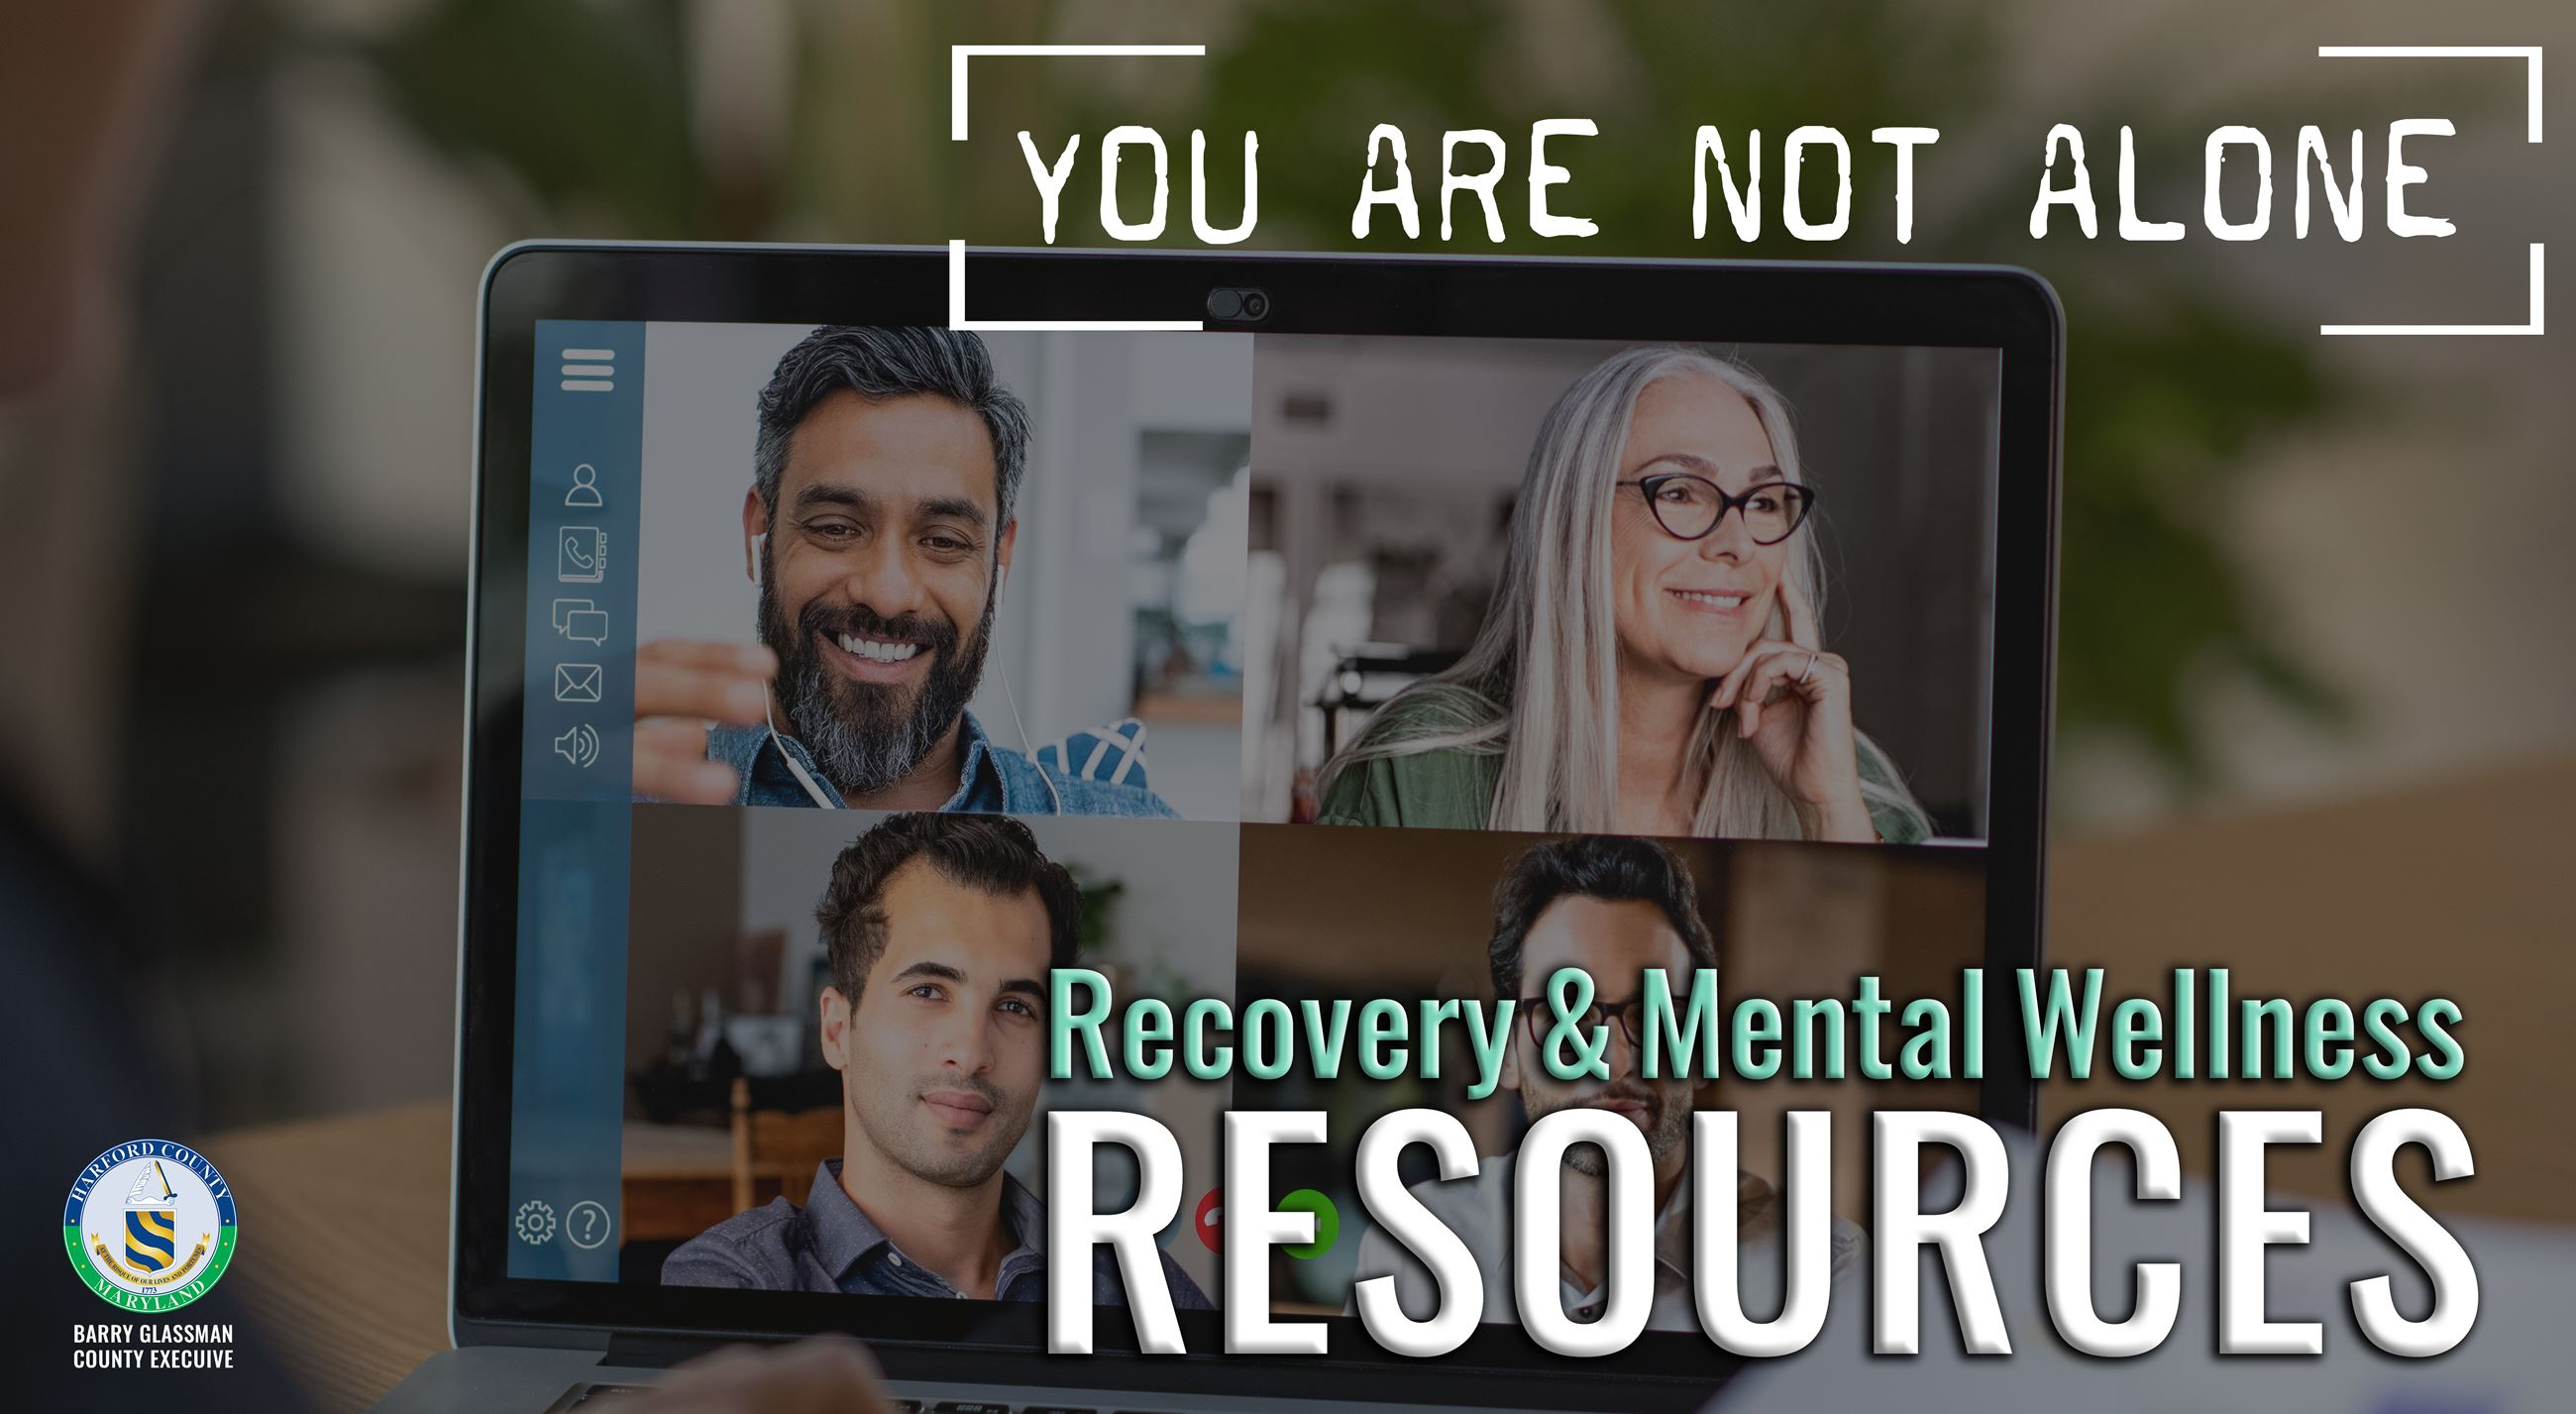 Mental Health and Addiction resources for social distancing during COVID-19